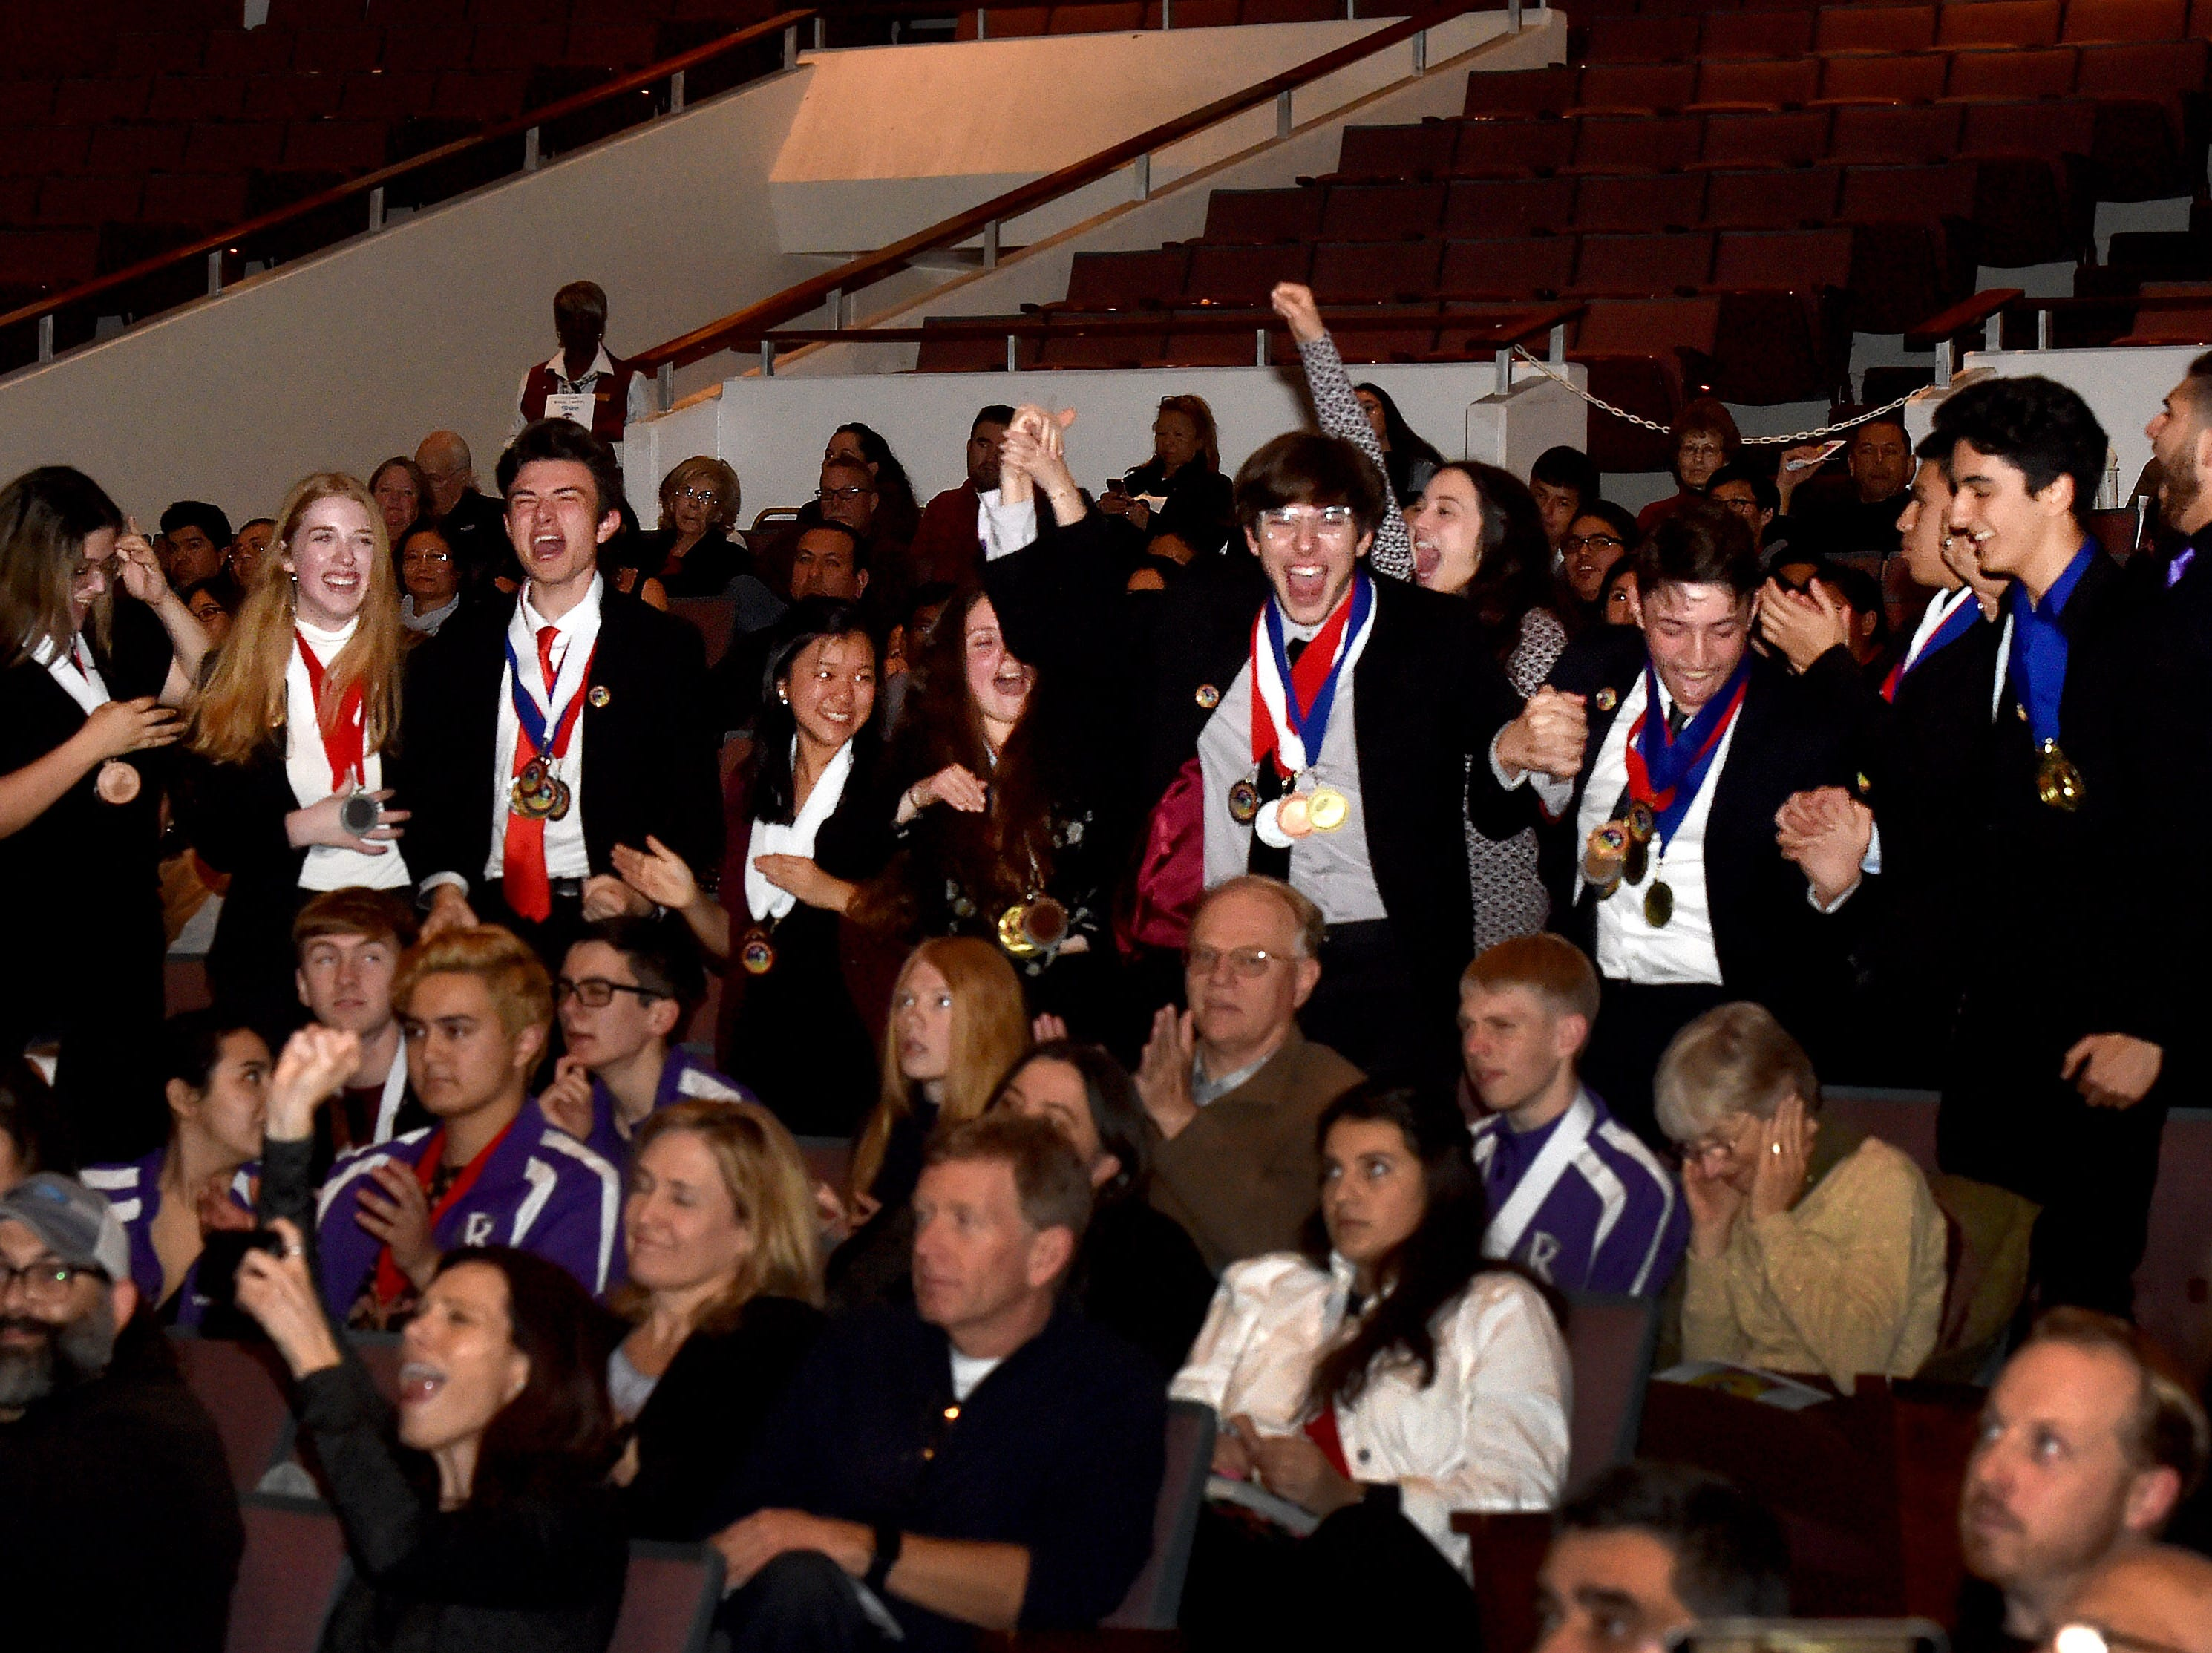 Students from Calabasas High School erupt into cheers as they are named the winners of the Ventura County Academic Decathlon for the third year in a row at the awards ceremony in Oxnard on Monday.